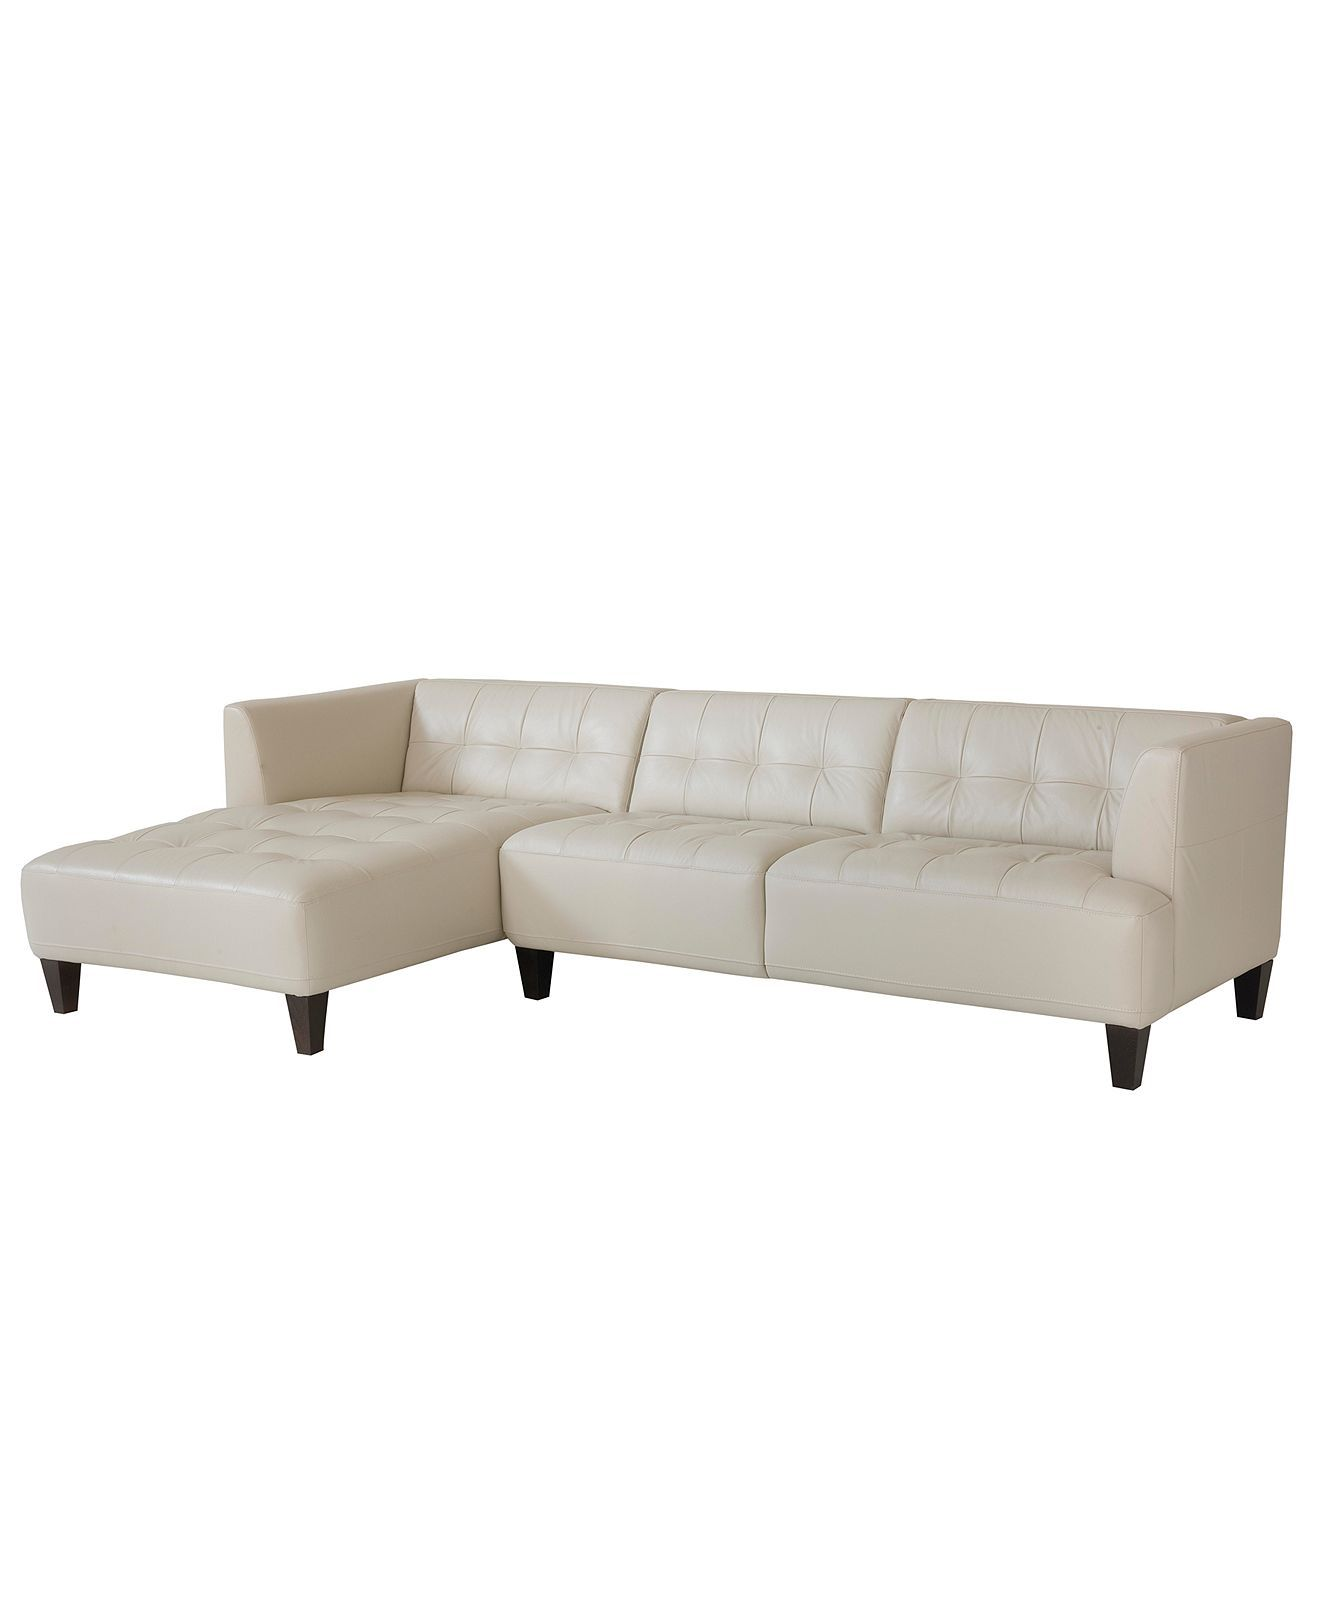 alessia leather sectional sofa 2 piece chaise 109 w x 65 d x 28 h rh fr pinterest com